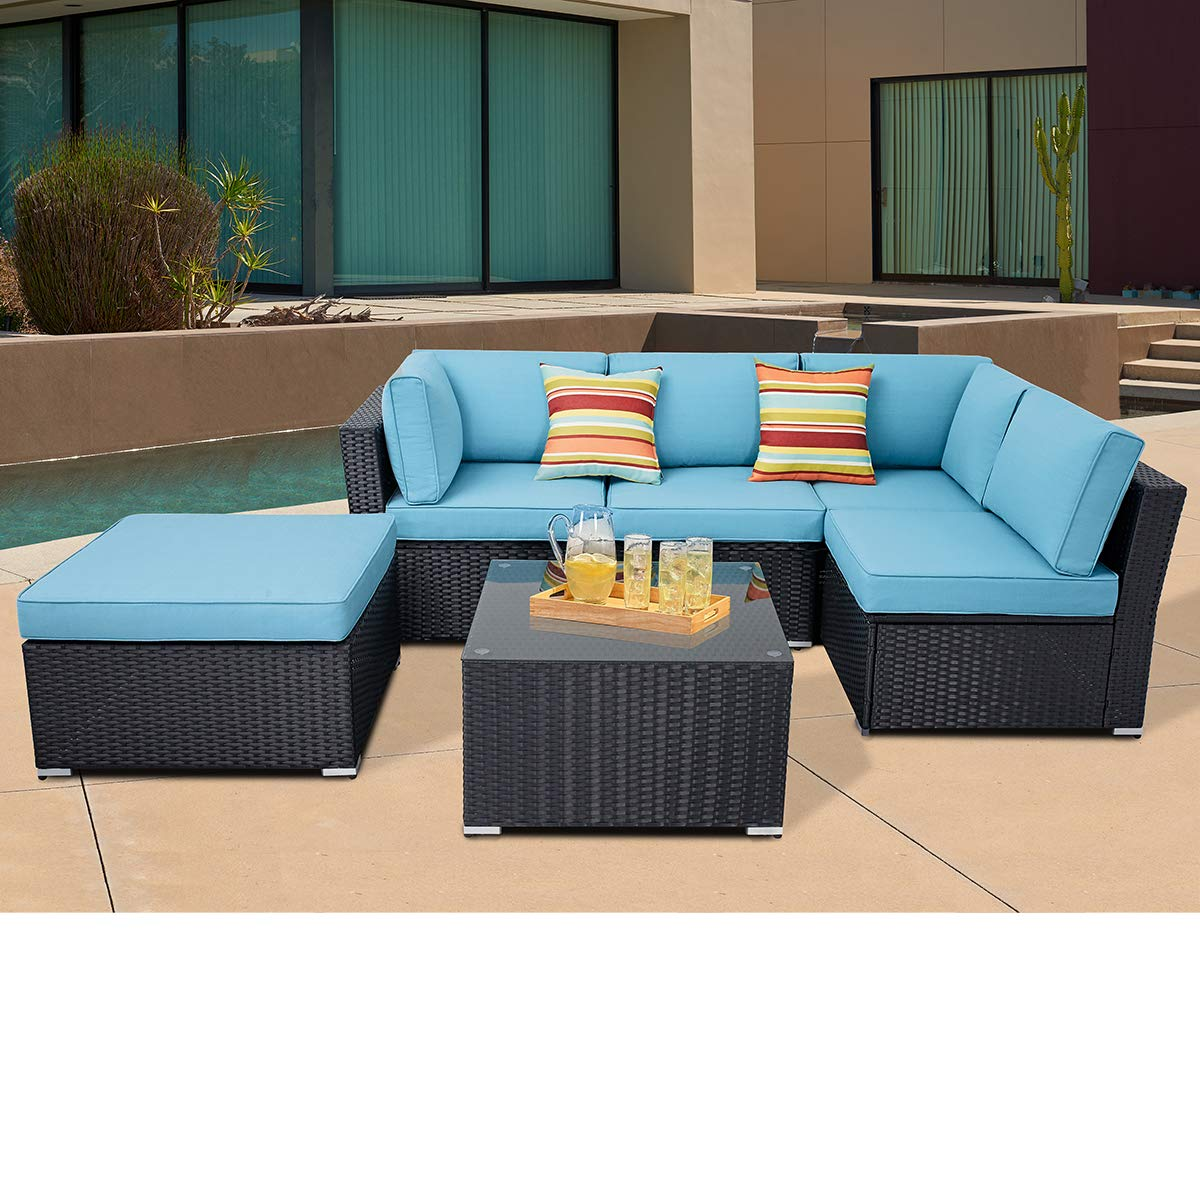 suncrown patio furniture sofa set 4 piece outdoor sectional sofa of 5 seats with ottoman and black wincker tempered glass top table sky blue